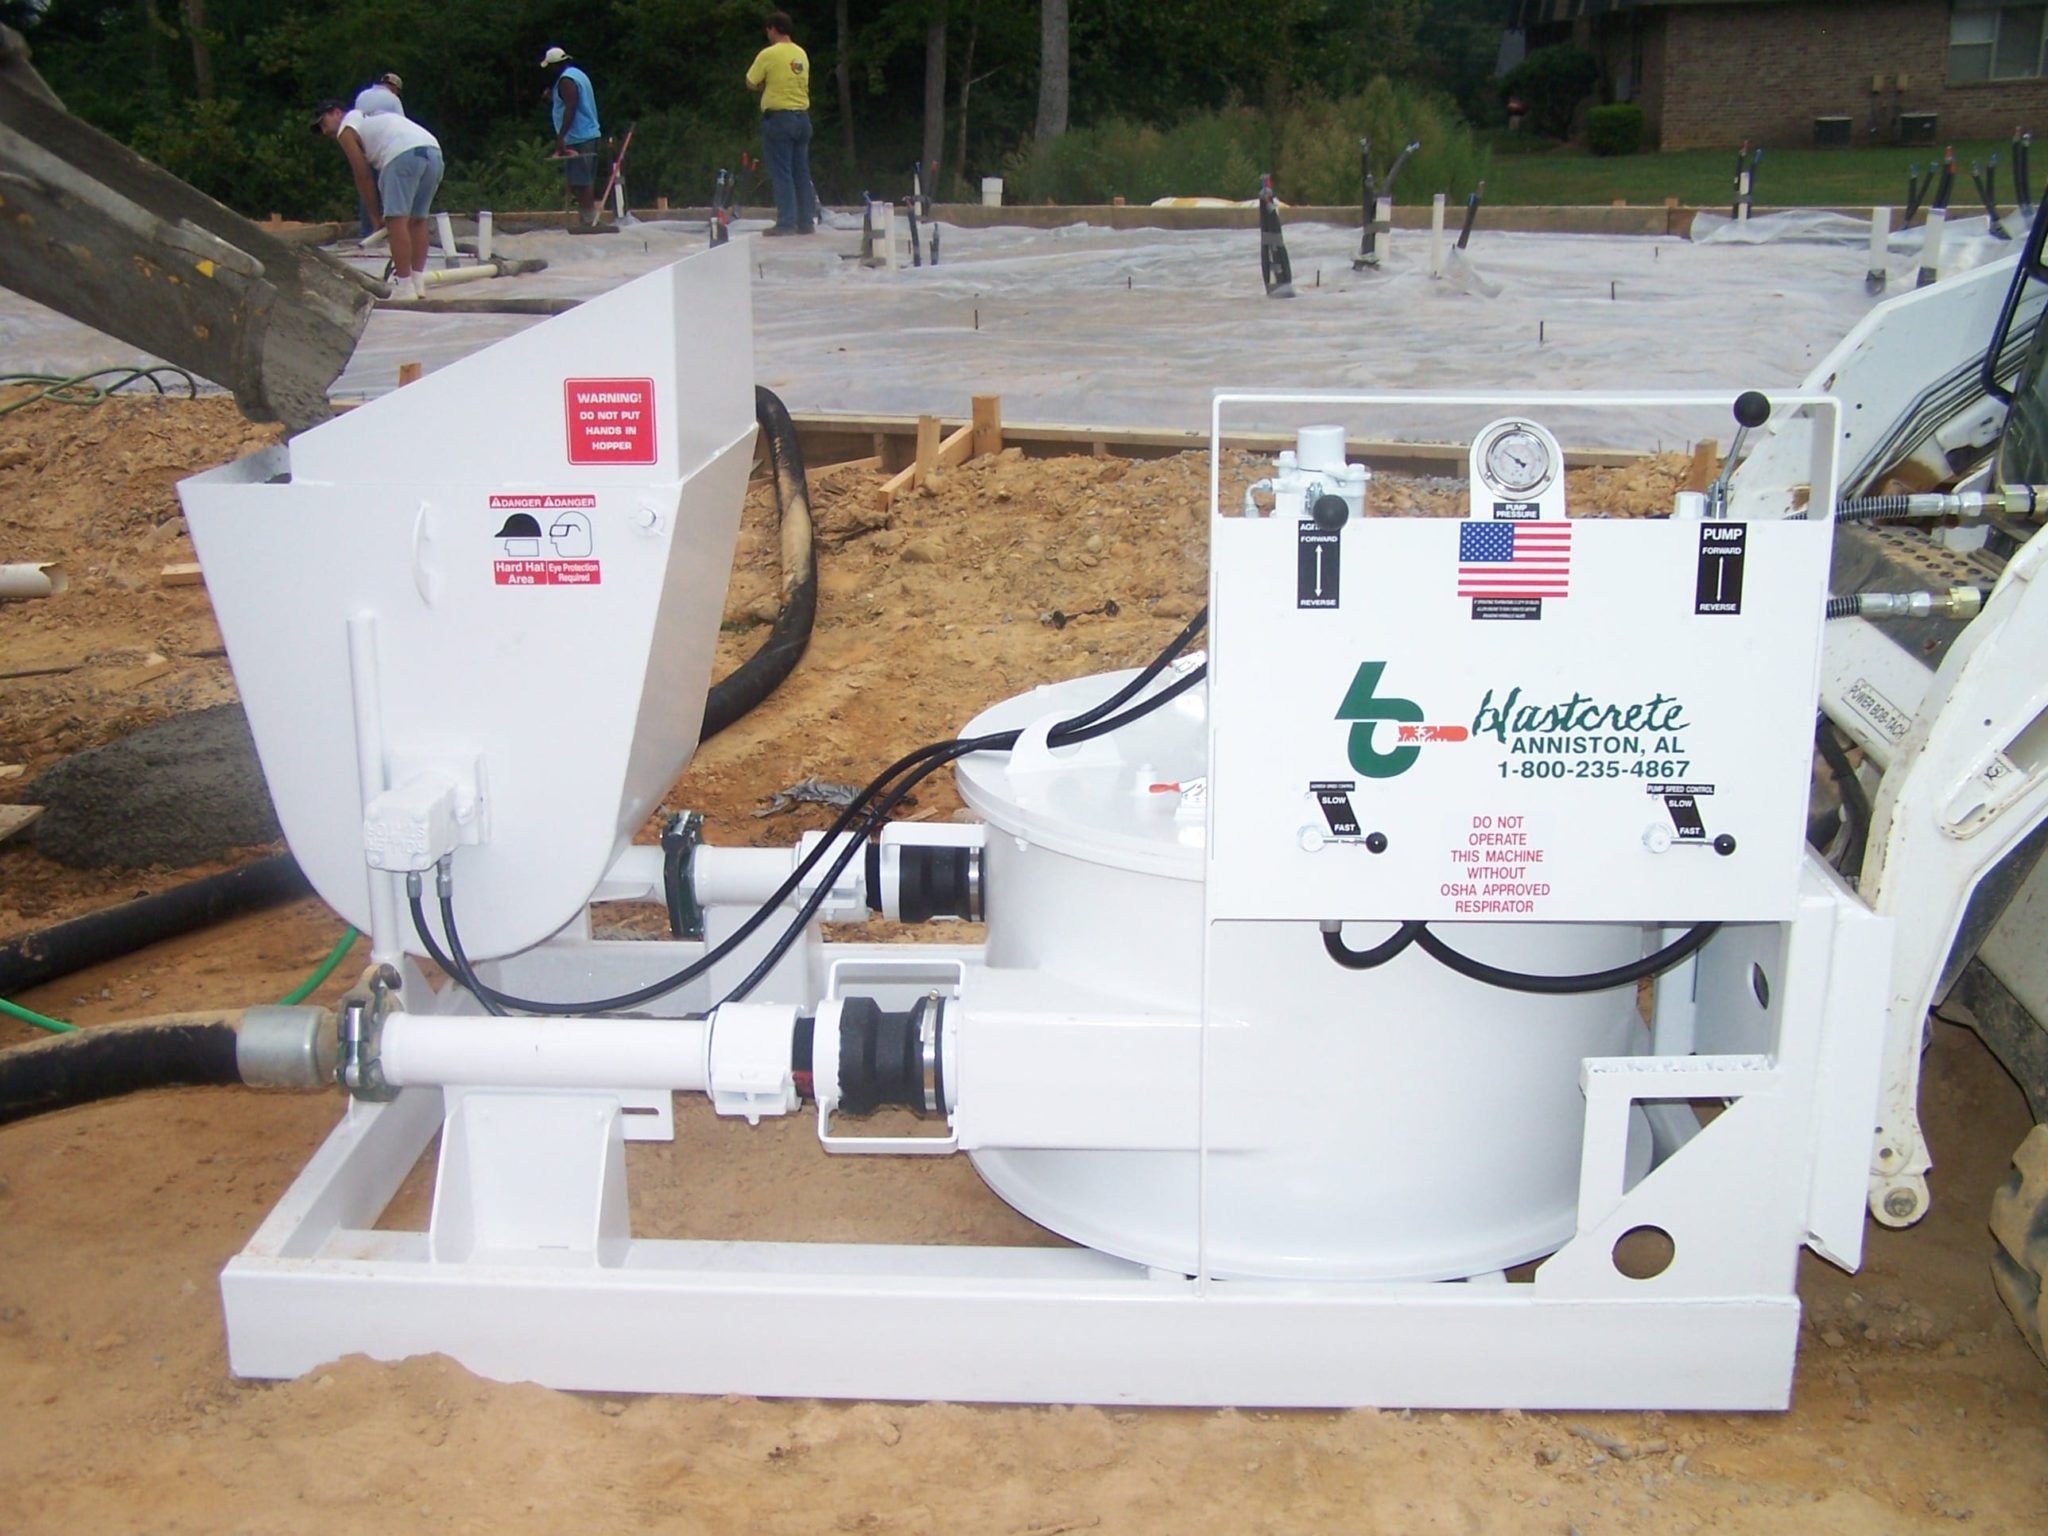 Hydraulic Pump Basement : Skid steer pump features universal design blastcrete